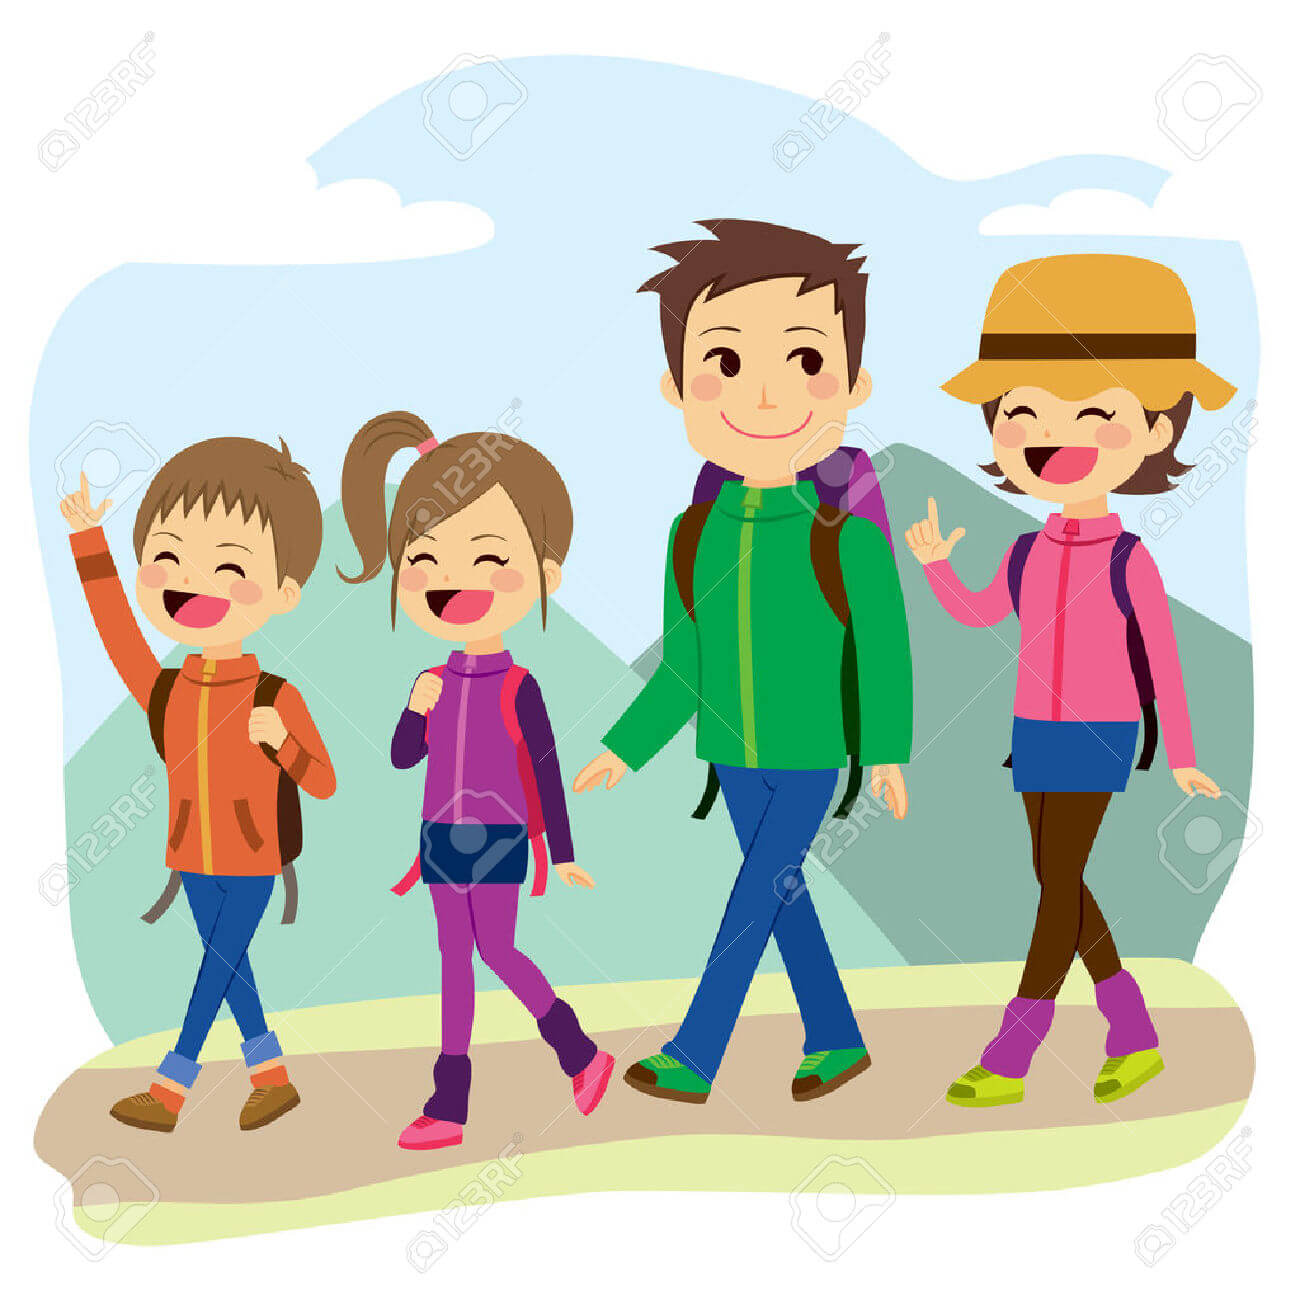 Happy Family Life Clip Art Changes To School Year Vacation Days Boys And Girls Club